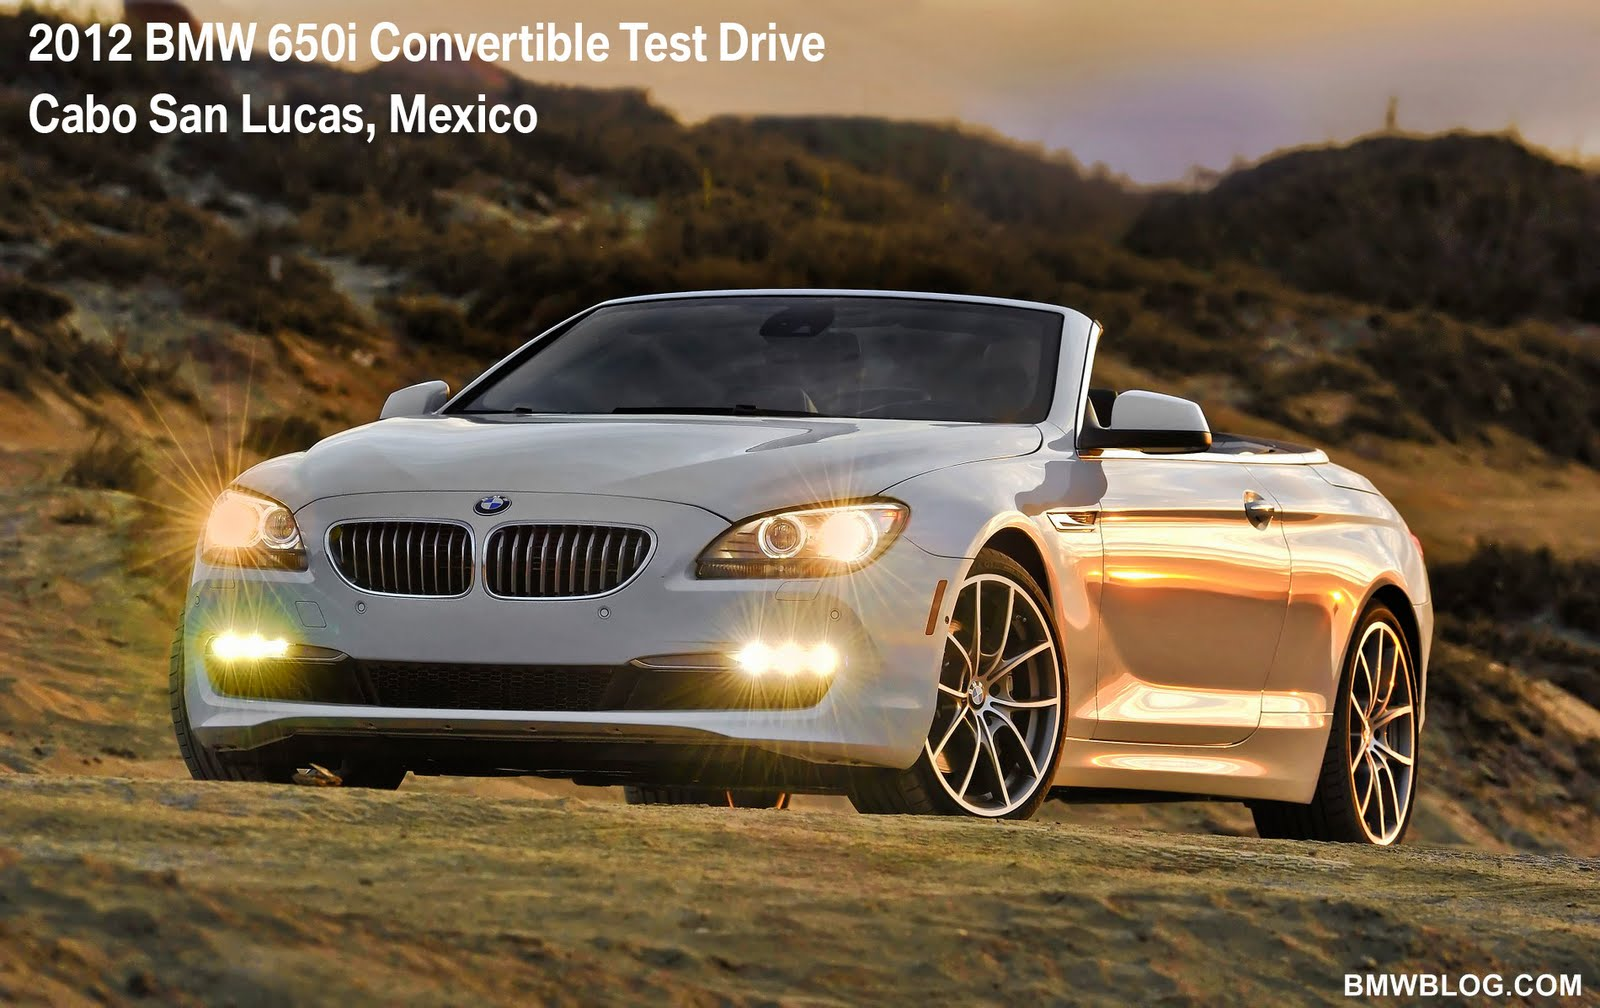 BMWCommunity: First Drive: 2012 BMW 650i Convertible – The Real ...